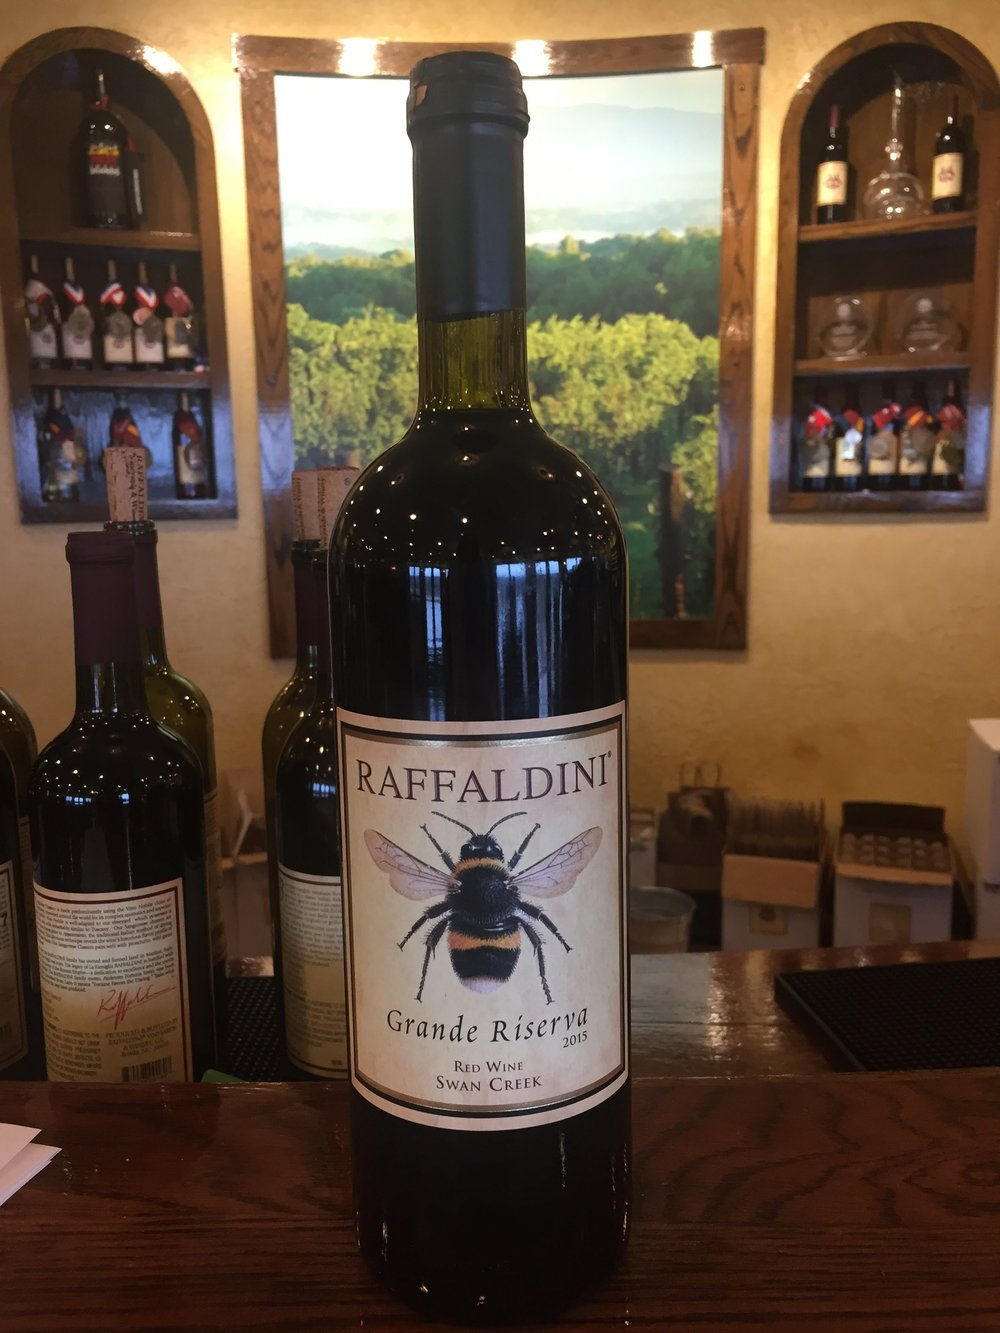 """A bottle of their 2015 Grande Reserva goes for $55. While we didn't get to taste this wine, we loved the story behind it: Because their wings are so small and don't move very fast, bumblebees shouldn't be able to fly...except through sheer determination and will. Much like Raffaldini, with sheer determination and will, they battle the difficult climate of NC to """"fly"""" and produce top-quality wines. (#slowclap #uglycry)"""